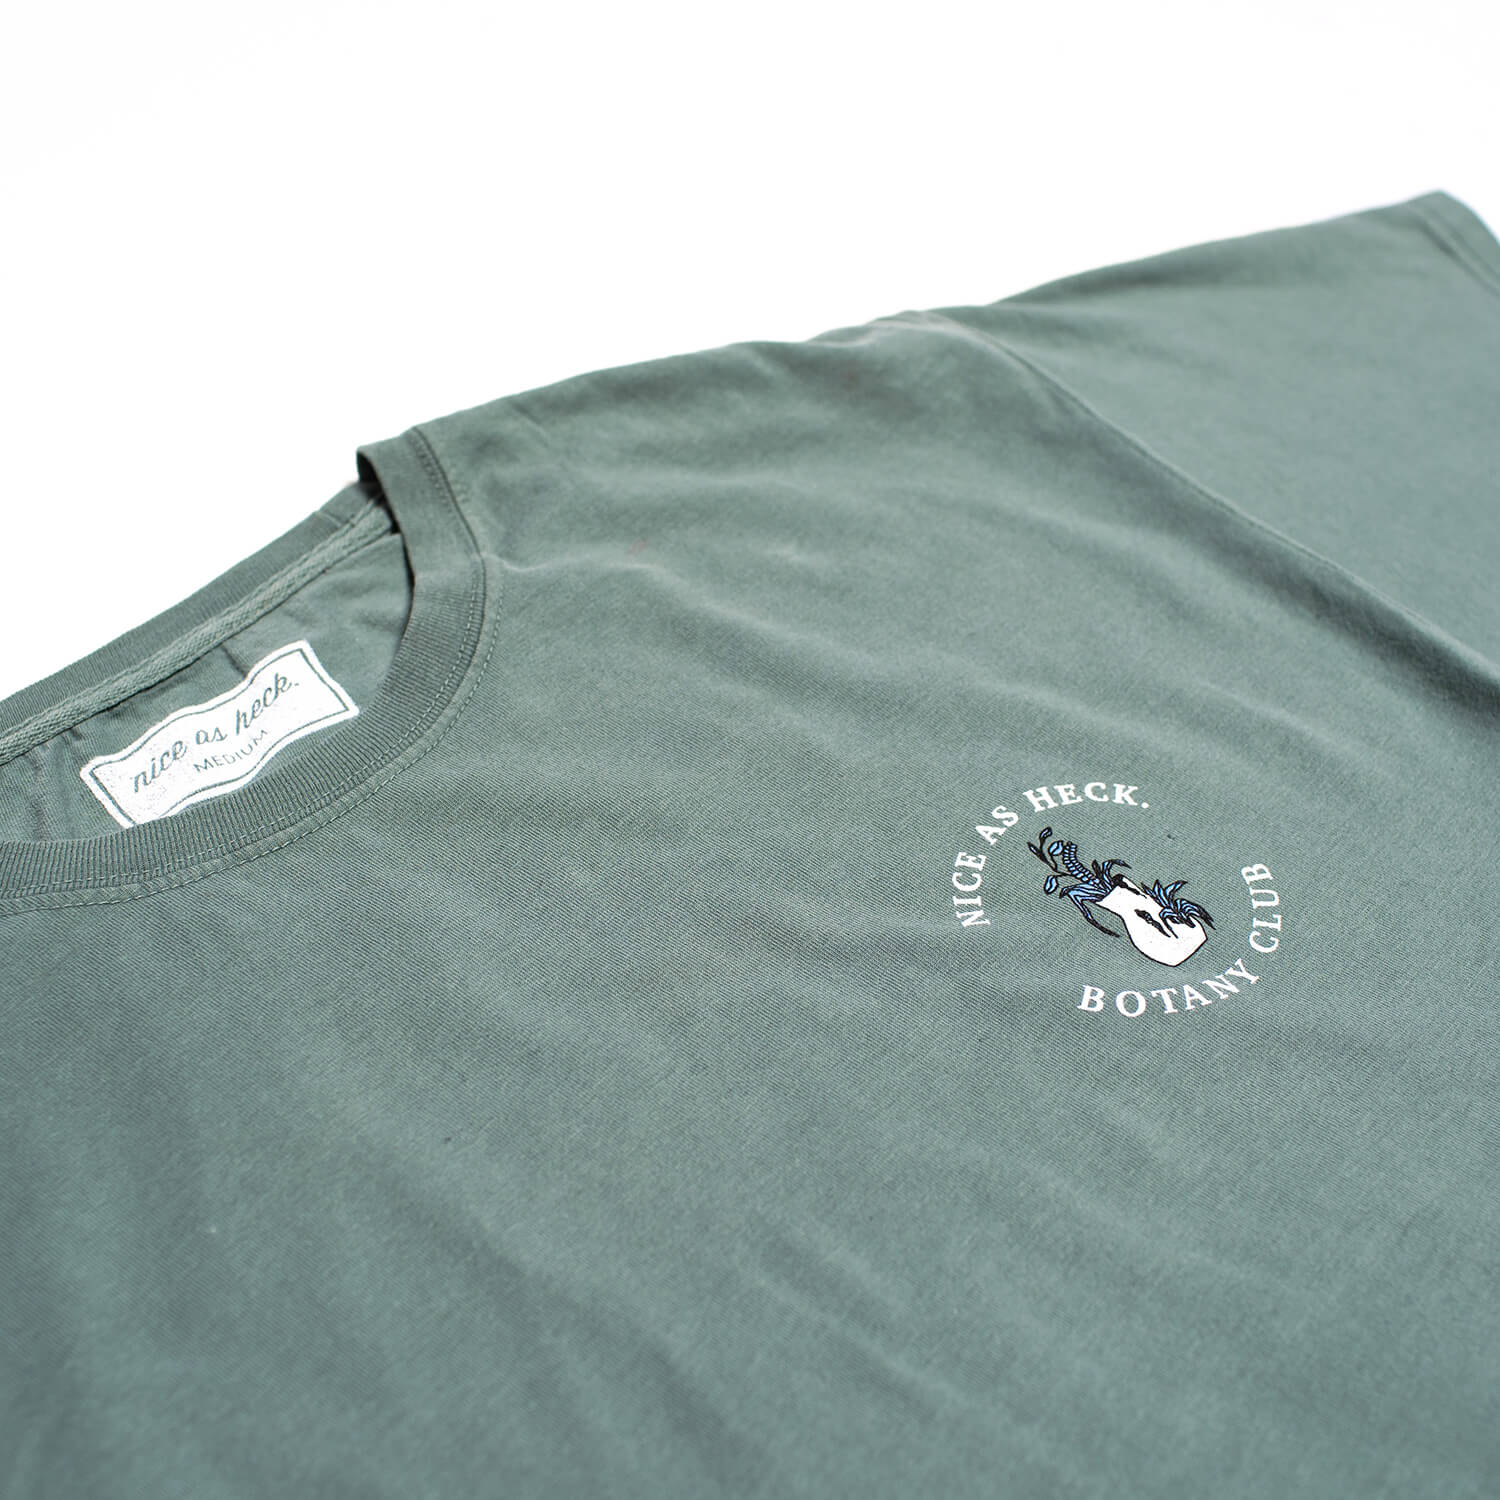 botany club tee close up